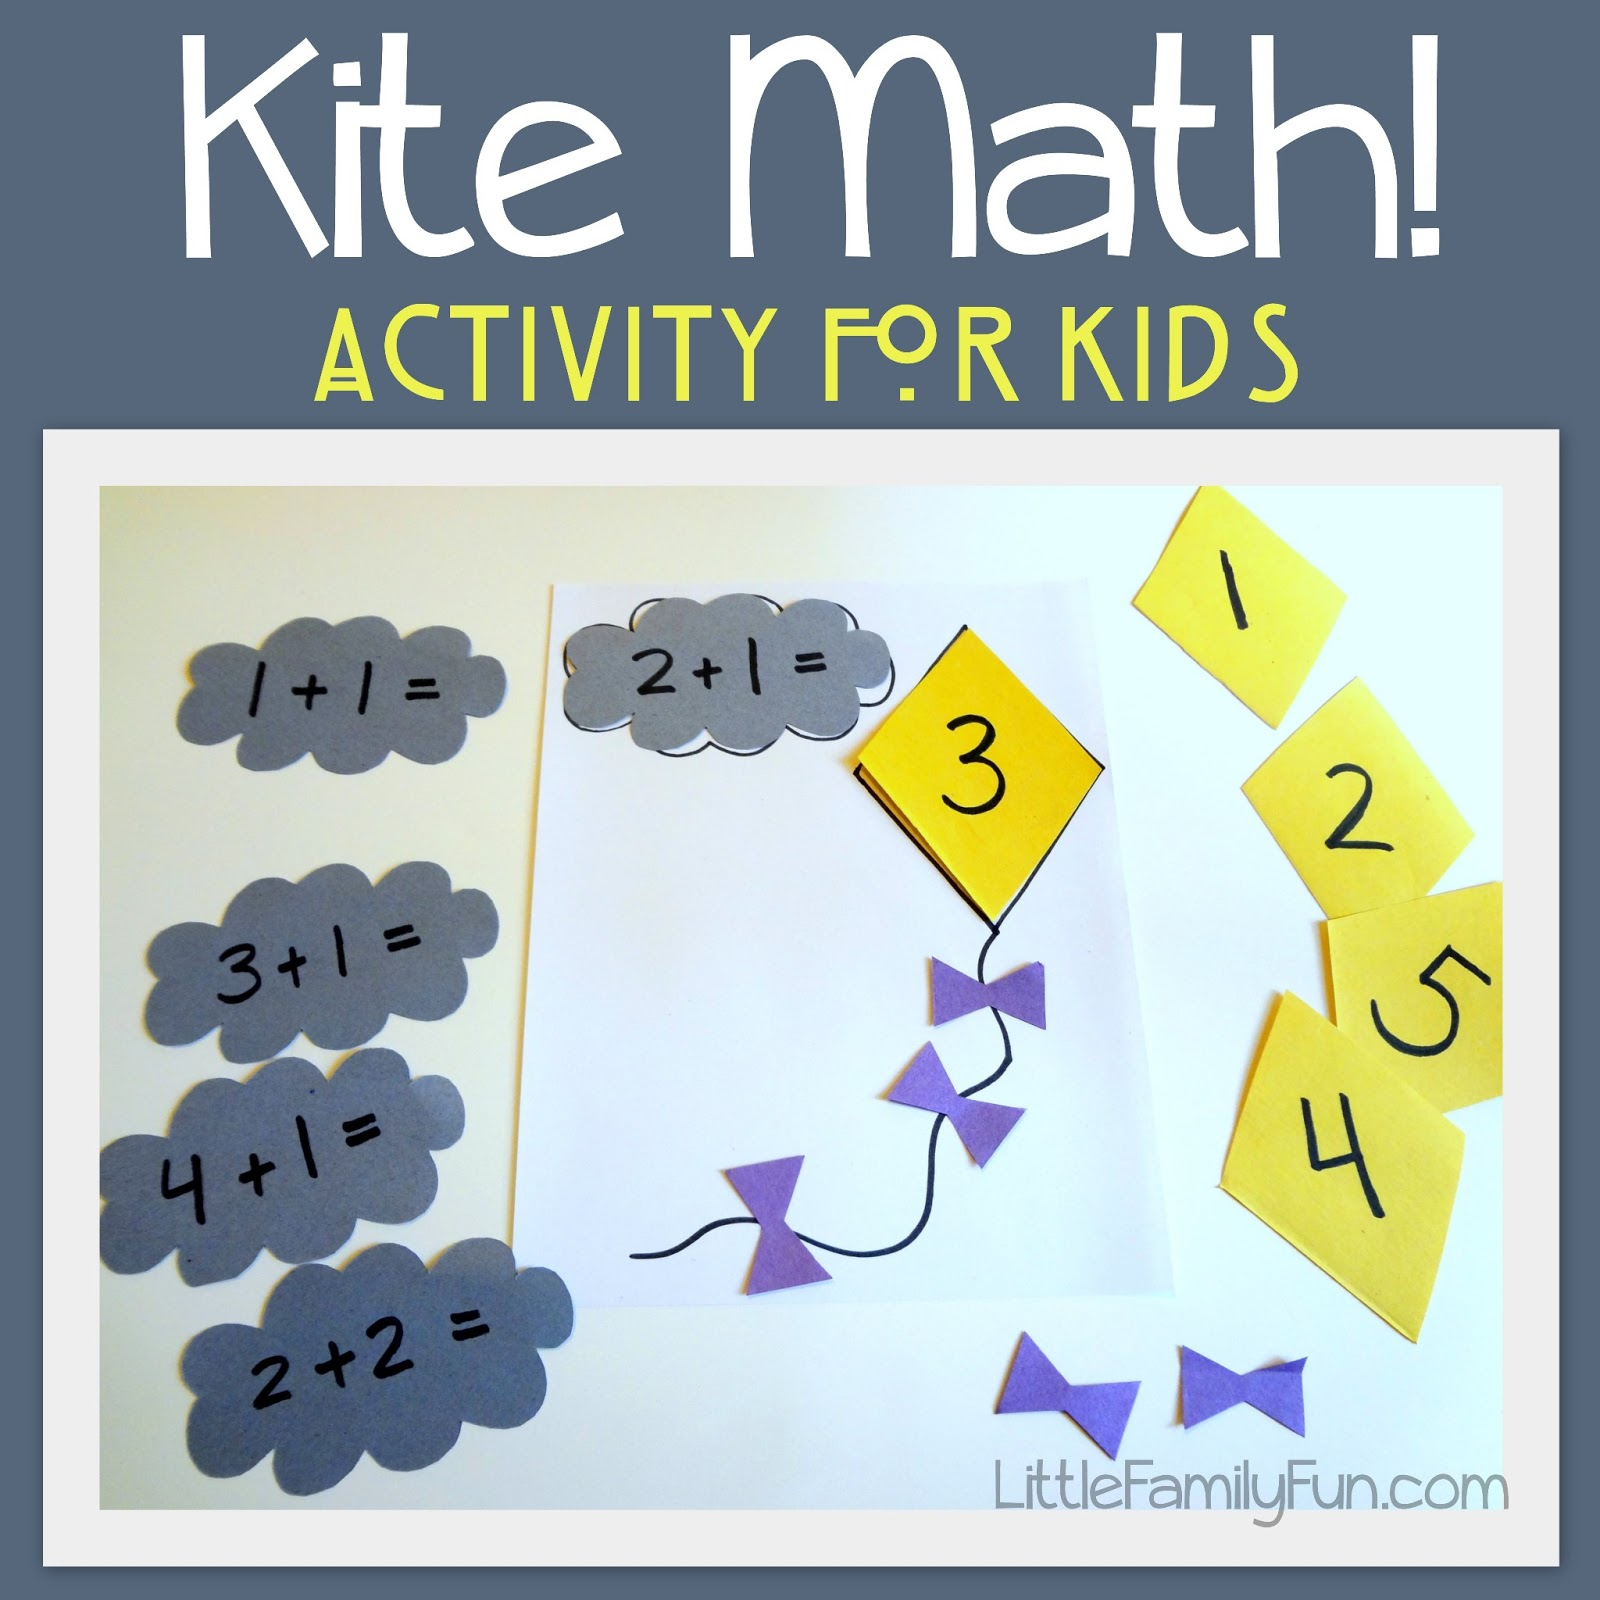 Little Family Fun Kite Math